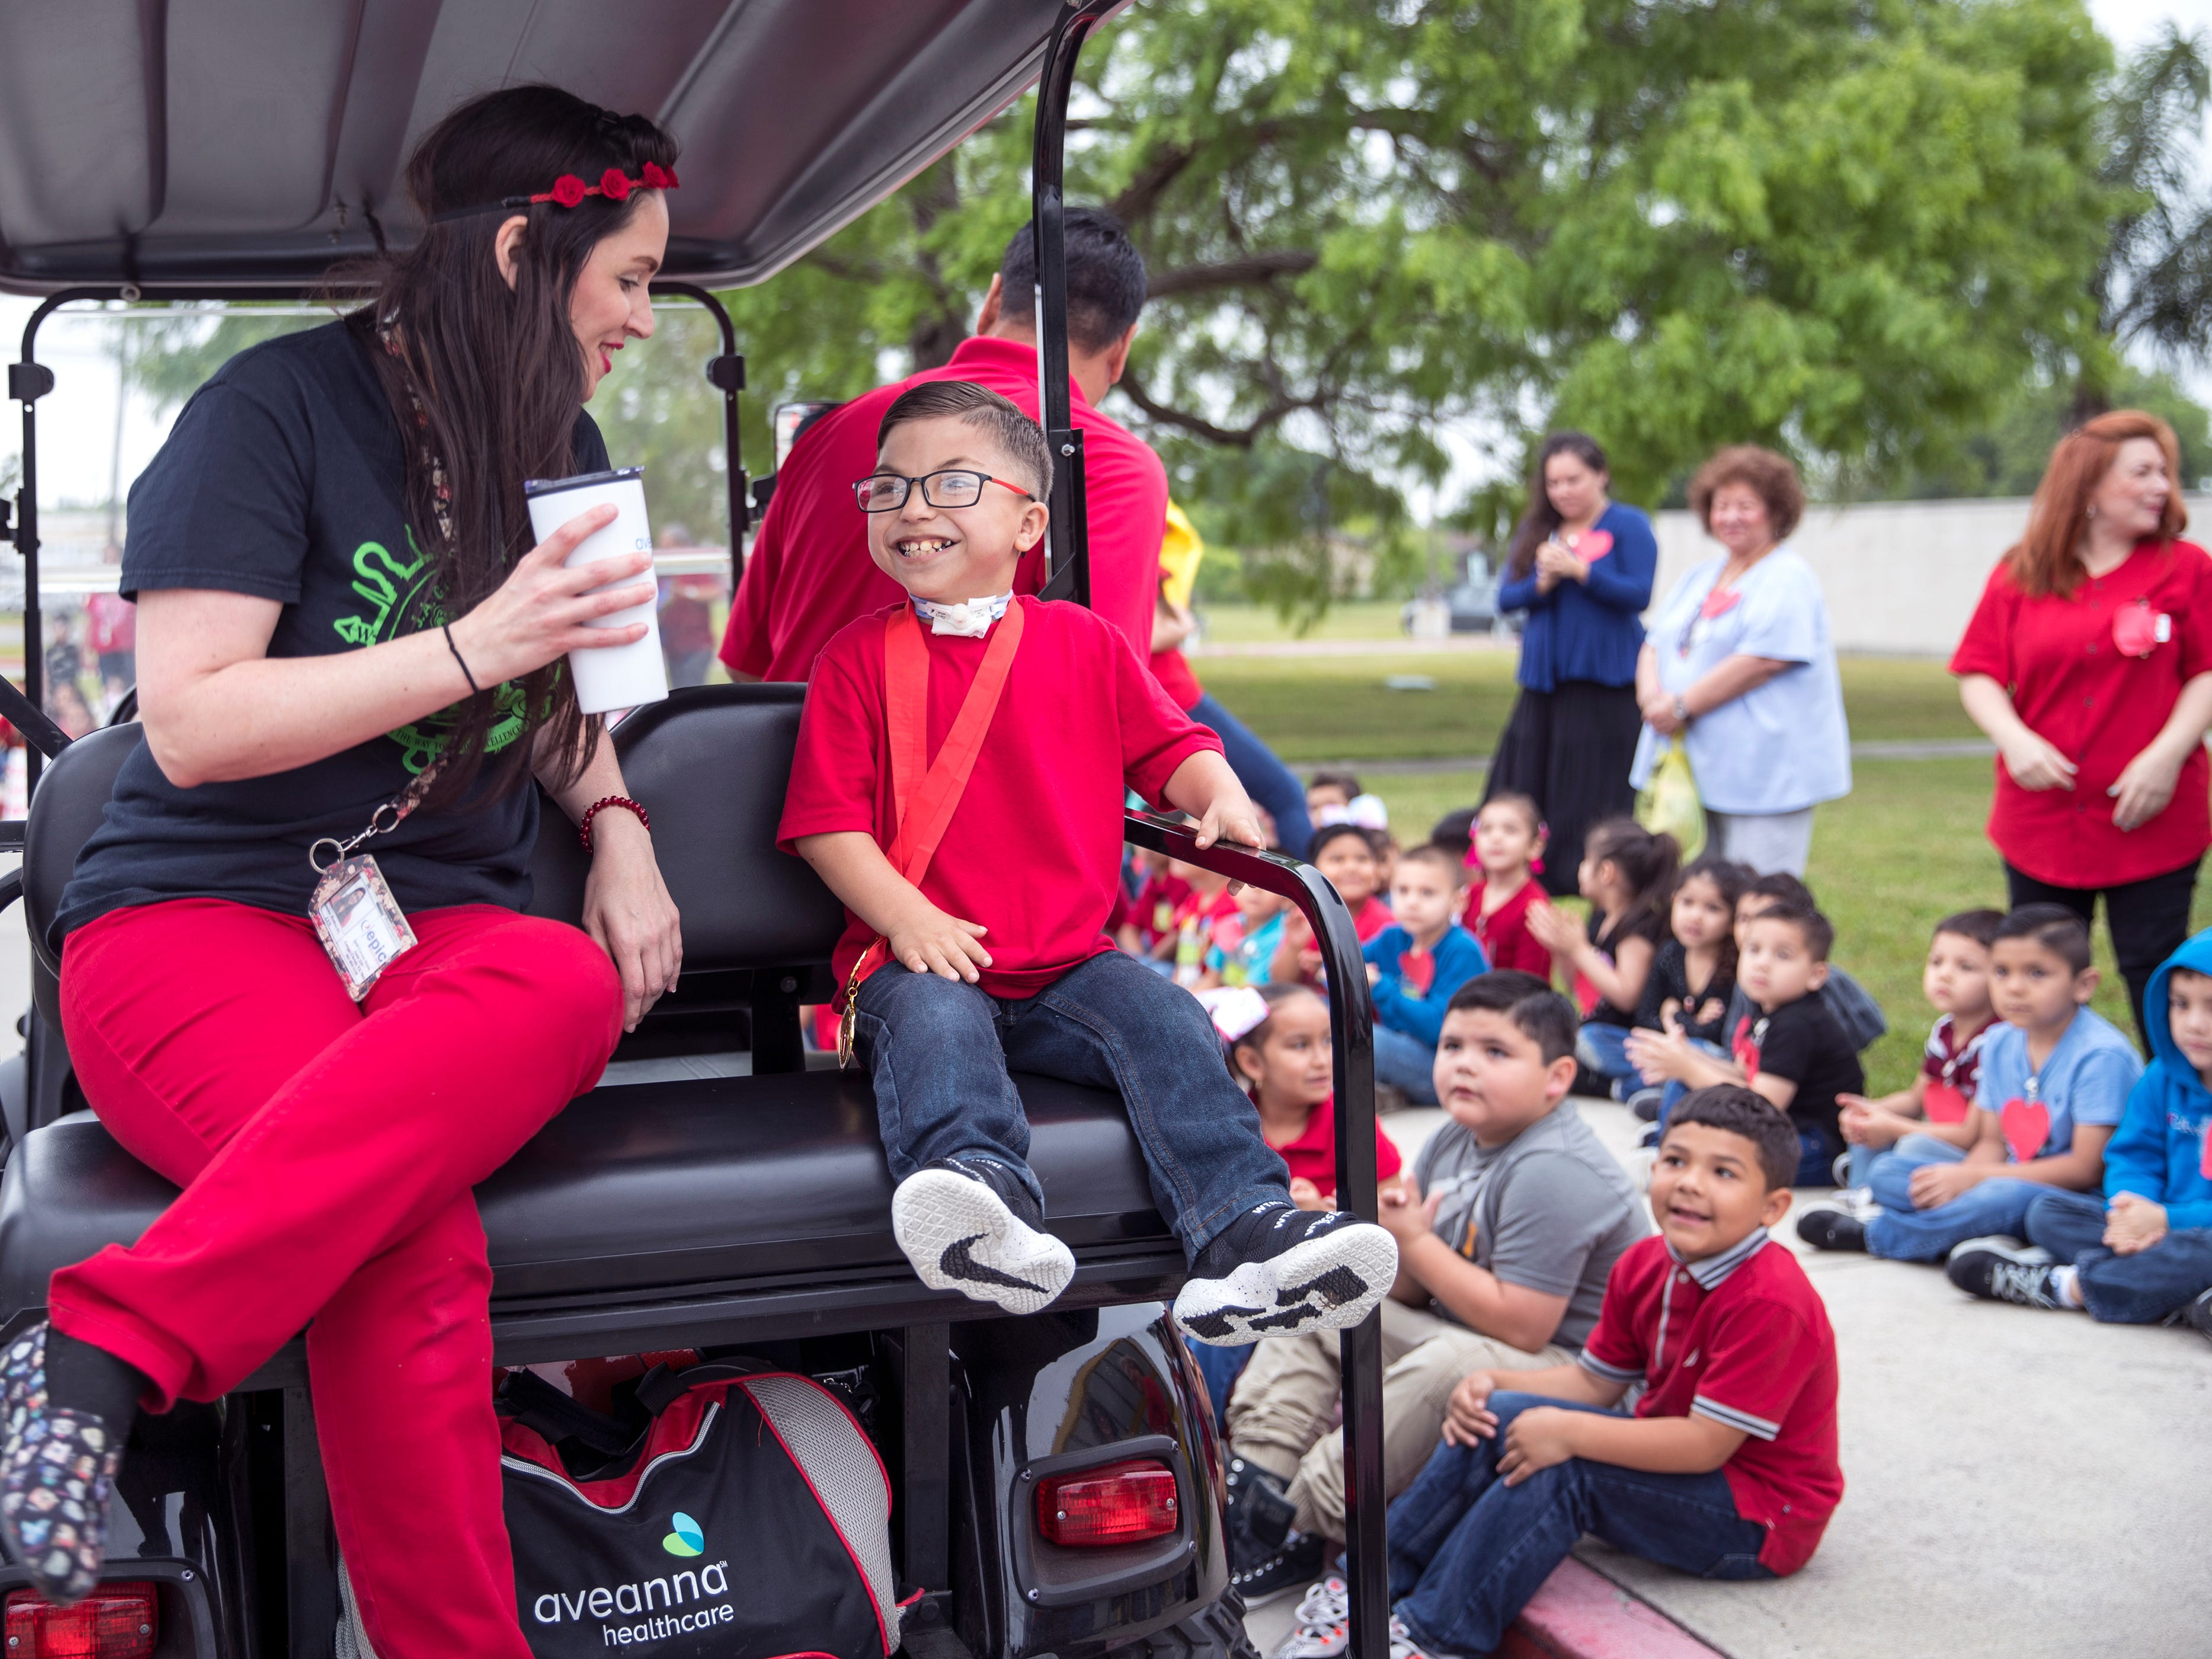 """Janine Hobrecht (left), a pediatric private duty nurse, talks with Ethann Valdez, 9, before a parade begins in his honor at Garcia Elementary School on Wednesday, April 17, 2019. Diagnosed at the age of five with geleophysic dysplasia (known as dwarfism), Ethann will be out of school for the rest of the year as he undergoes open heart surgery for a valve replacement to the main aorta of his heart. The school wanted to send him off with a """"Best Wishes Parade"""" before he left."""